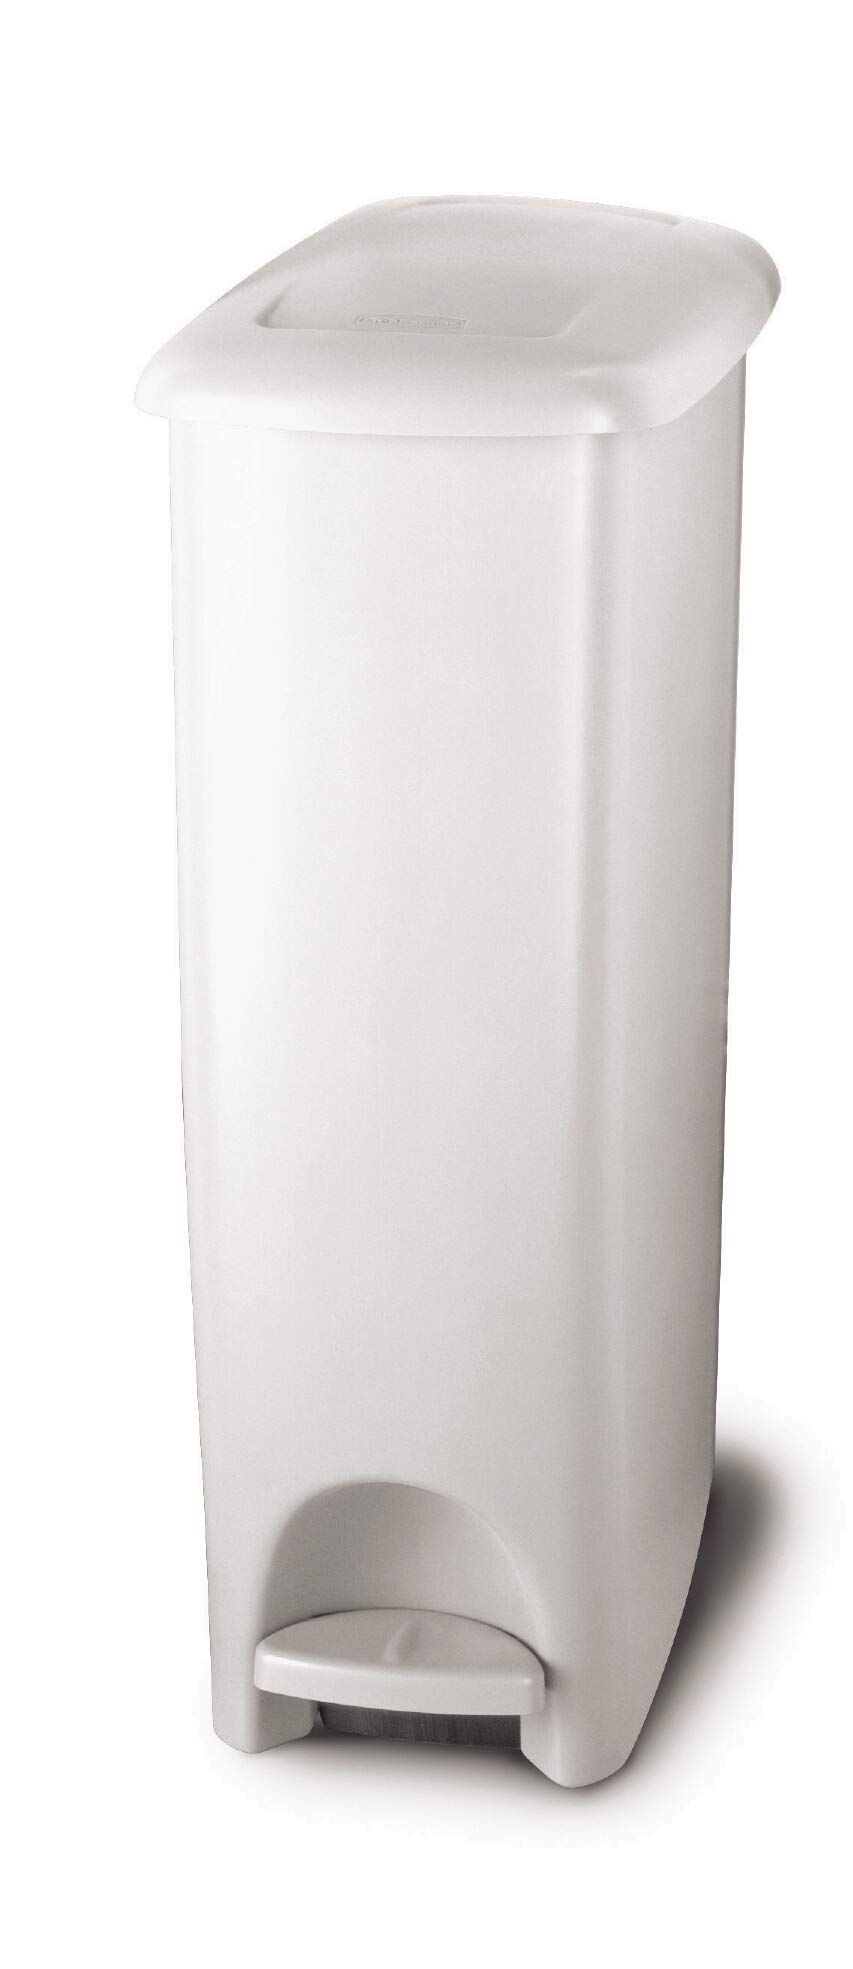 Rubbermaid Step On Lid Slim Trash Can for Home, Kitchen, and Bathroom Garbage, 11.25 Gallon, White by Rubbermaid